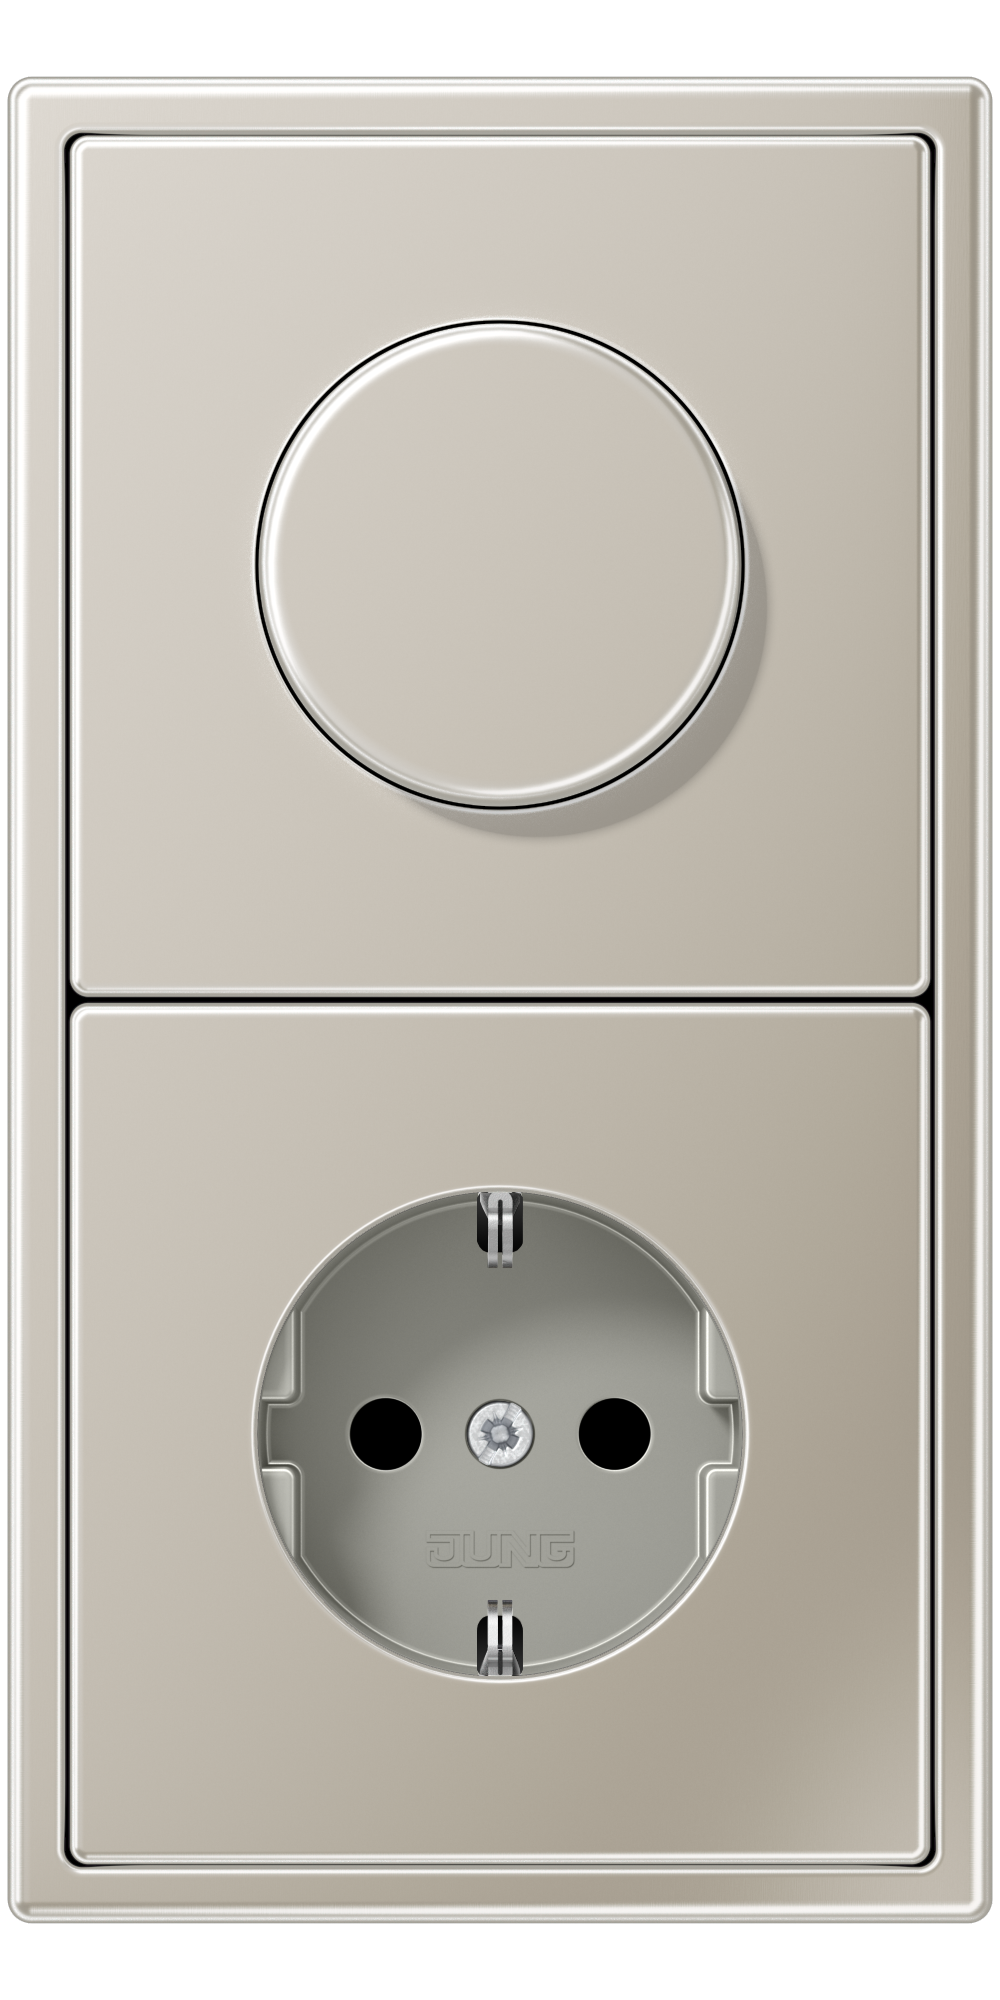 JUNG_LS990_stainless_steel_dimmer-socket